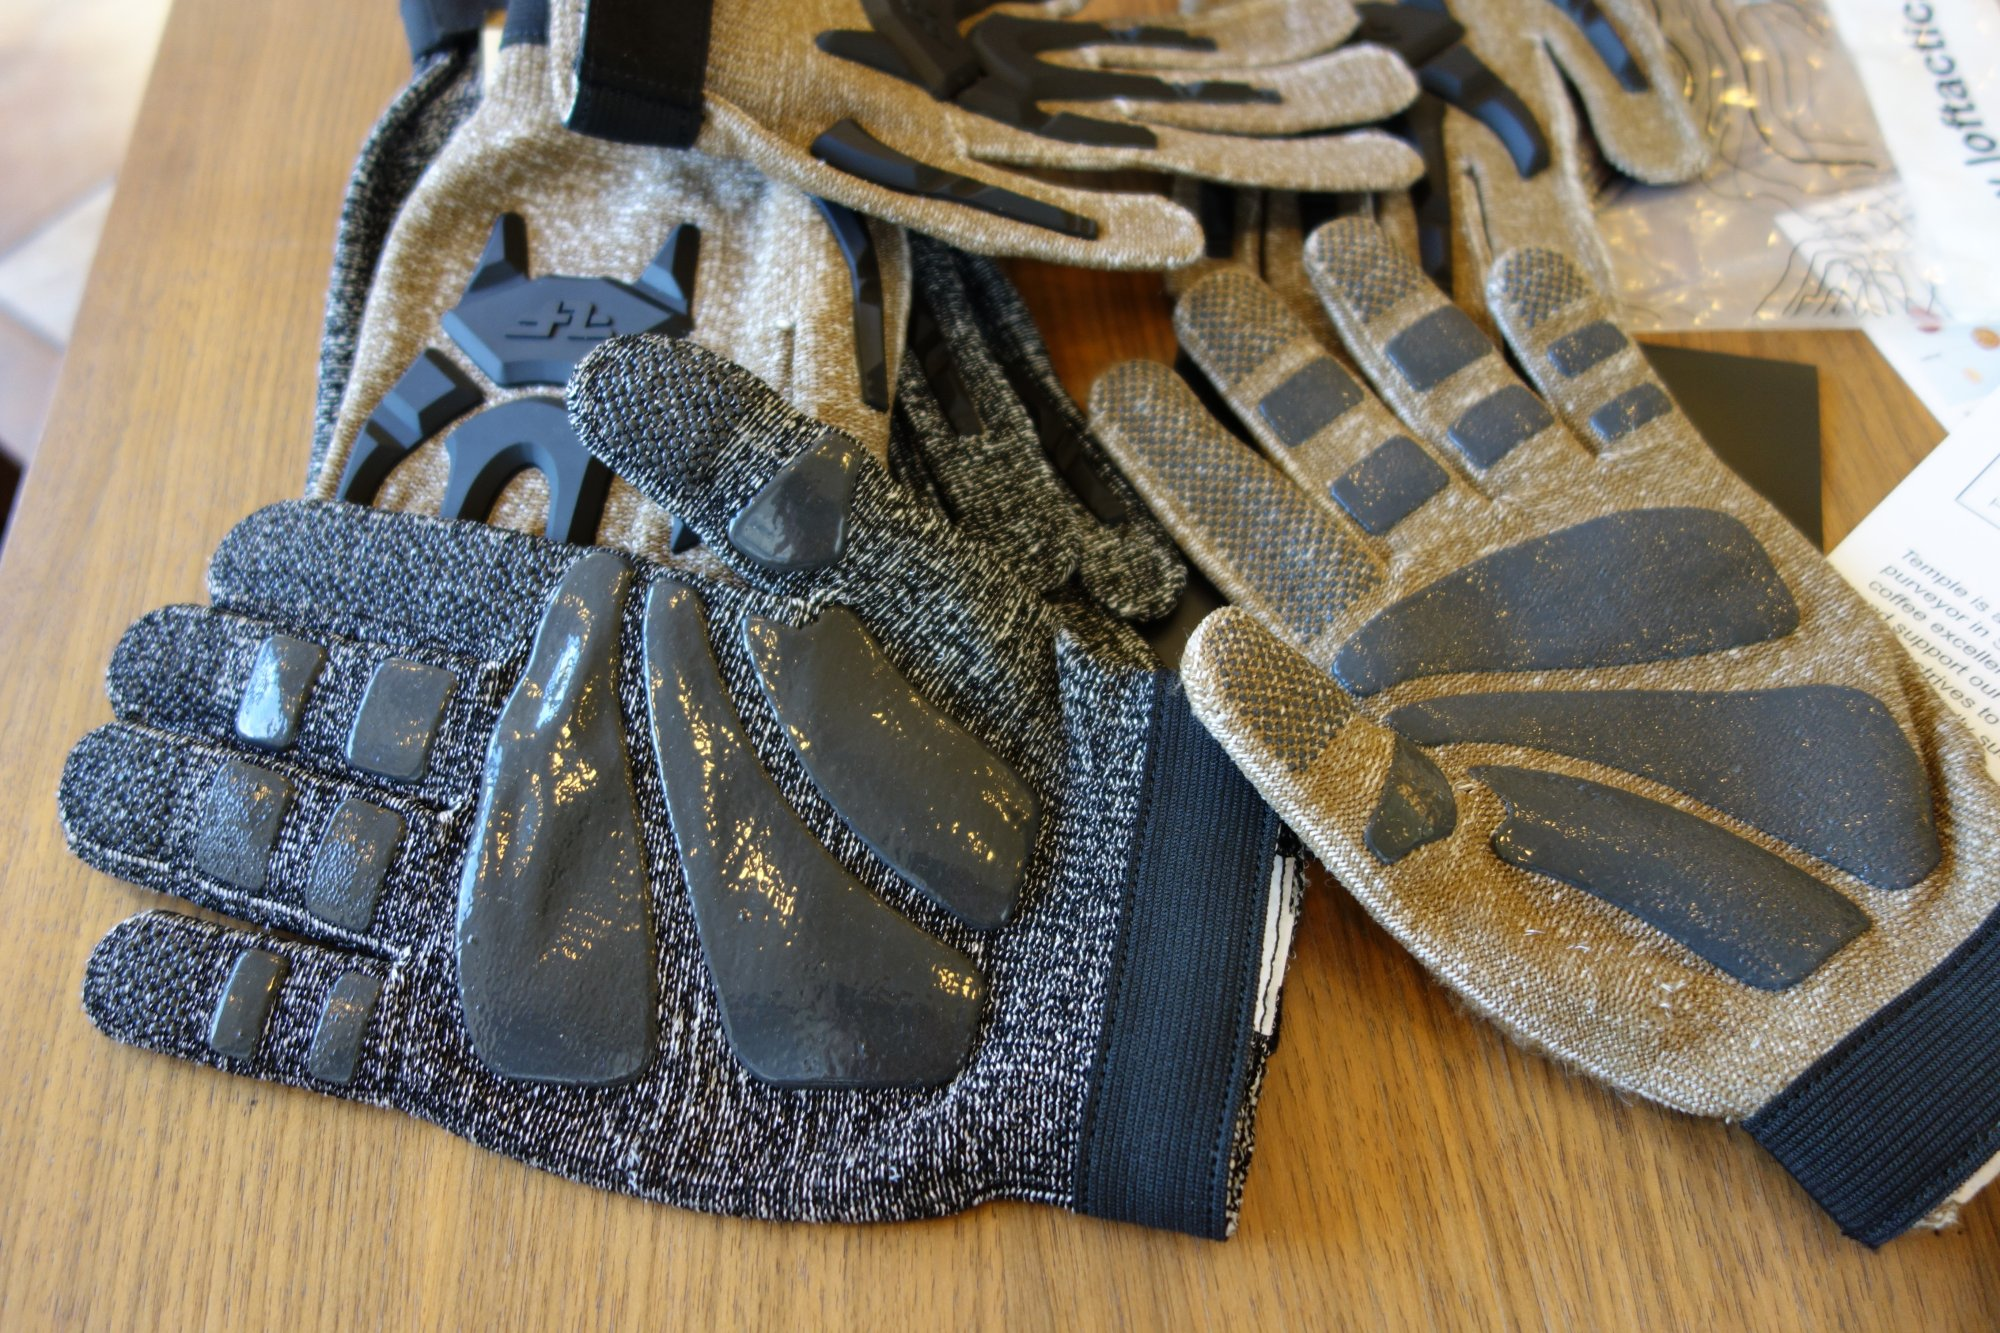 Line of Fire LOF Phantom Dyneema Cut Resistant Tactical Glove with Hard Knuckles and Silicone Print Gripping Material Tactical Gloves Combat Gloves Brian Miller Temple Coffee 8 16 13 David Crane DefenseReview.com DR 7 Line of Fire LOF Phantom Combat/Tactical Glove: Seamless Dyneema Cut Resistant Combat/Tactical Shooting Gloves with Hard Knuckles and Fingers and Silicone Gripping Material (Video!)